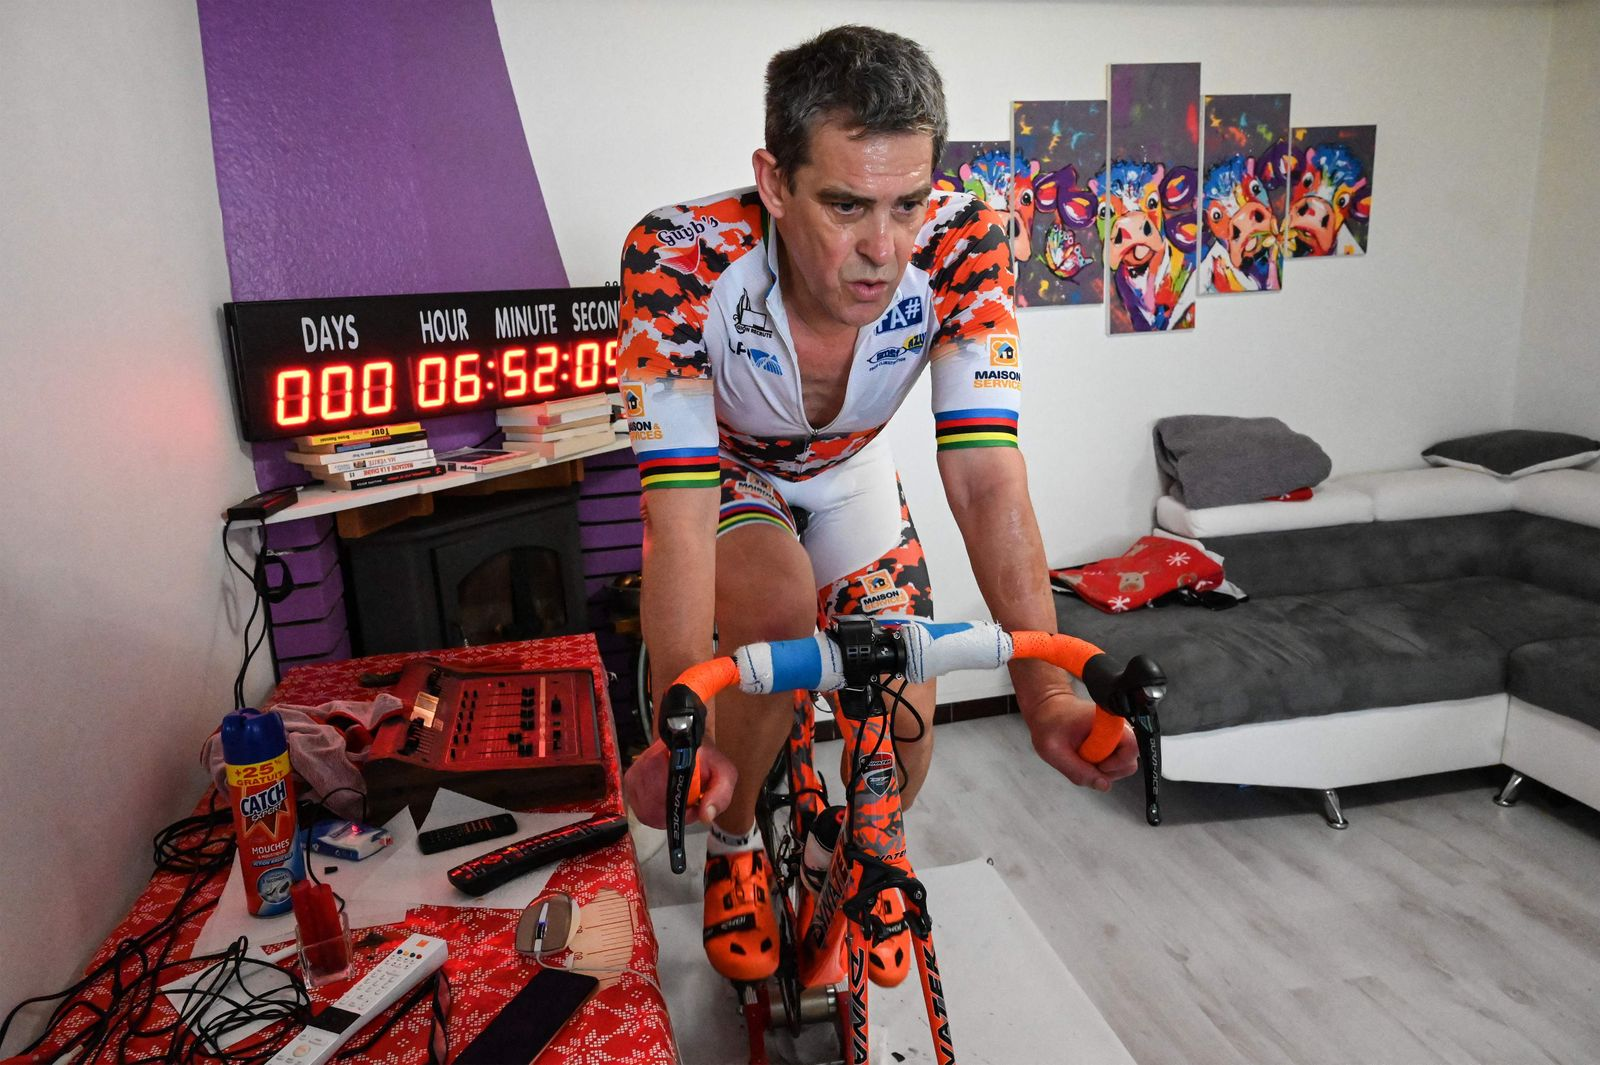 FILES-FRANCE-CYCLING-RECORD